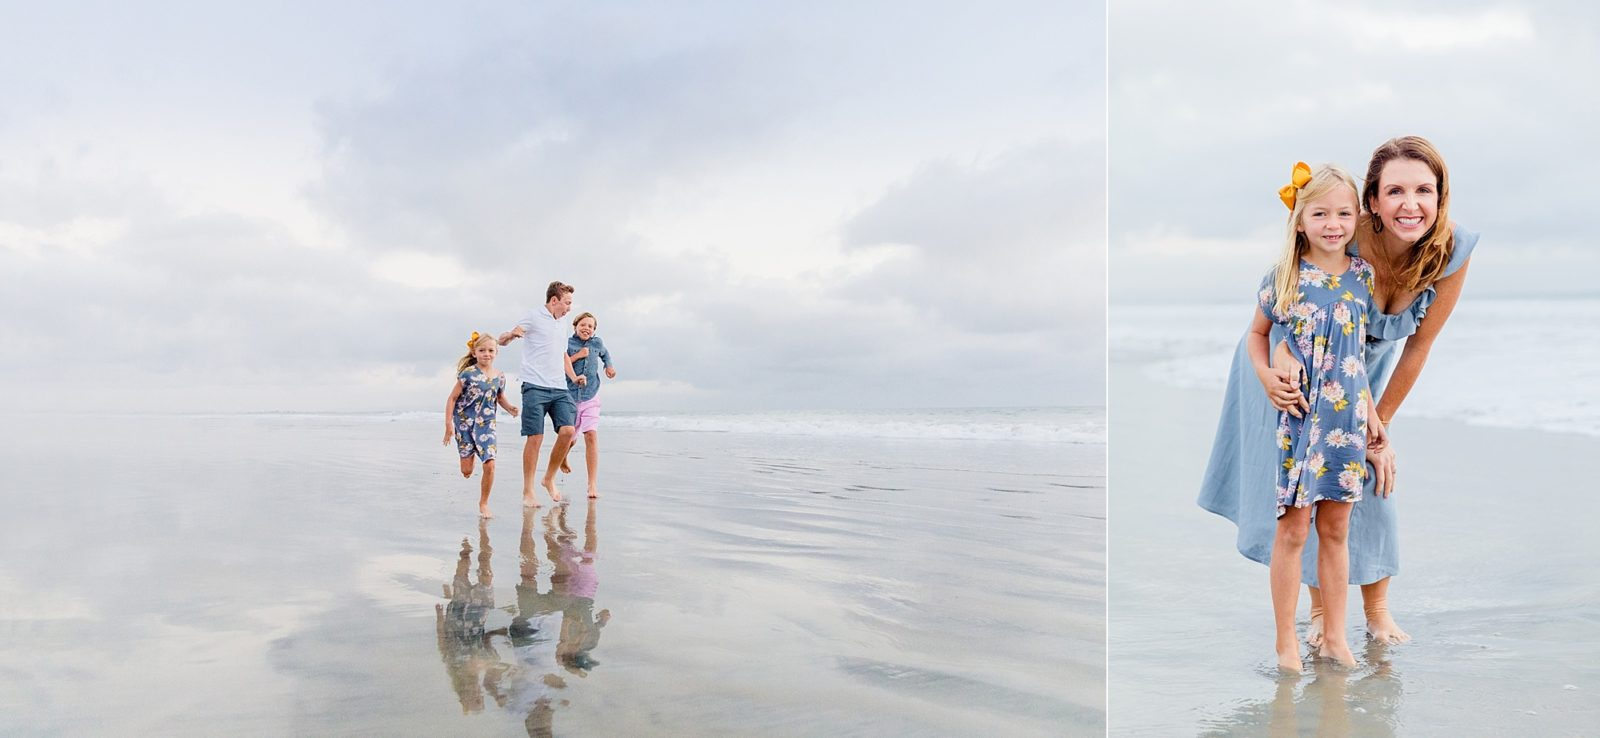 San Diego Family Photography | Amy Gray Photography